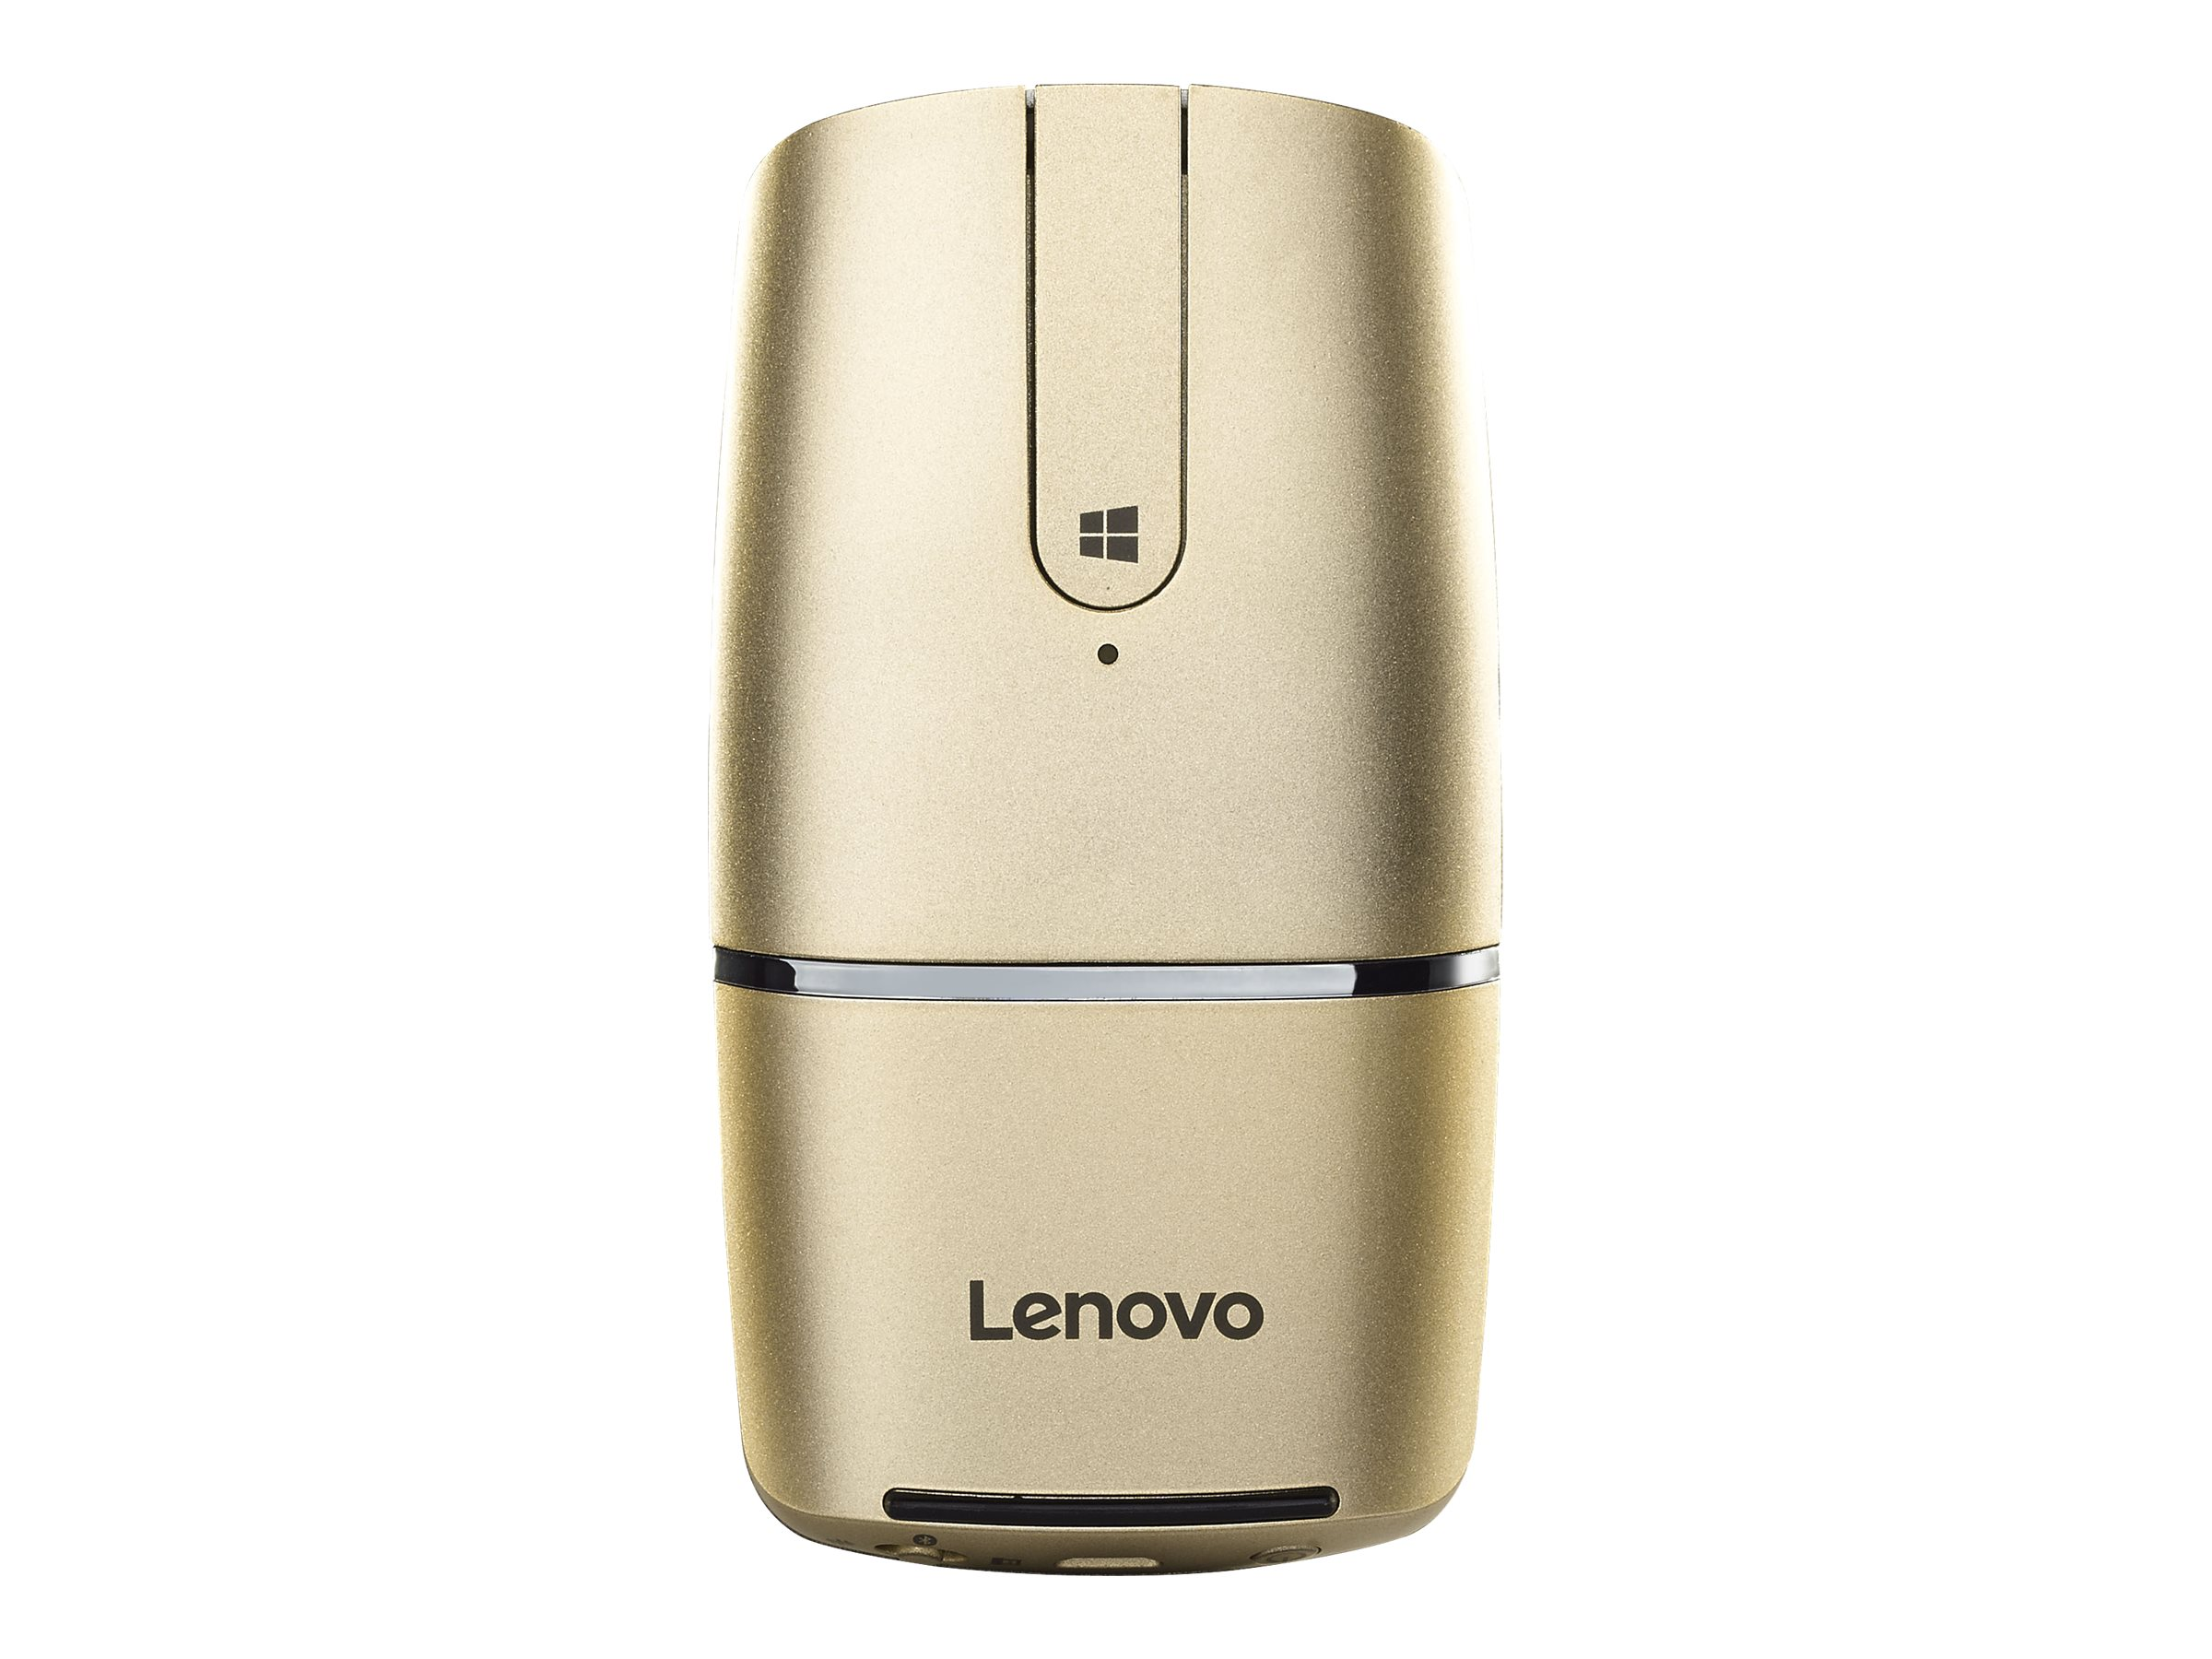 Lenovo Yoga Mouse, Golden, GX30K69569